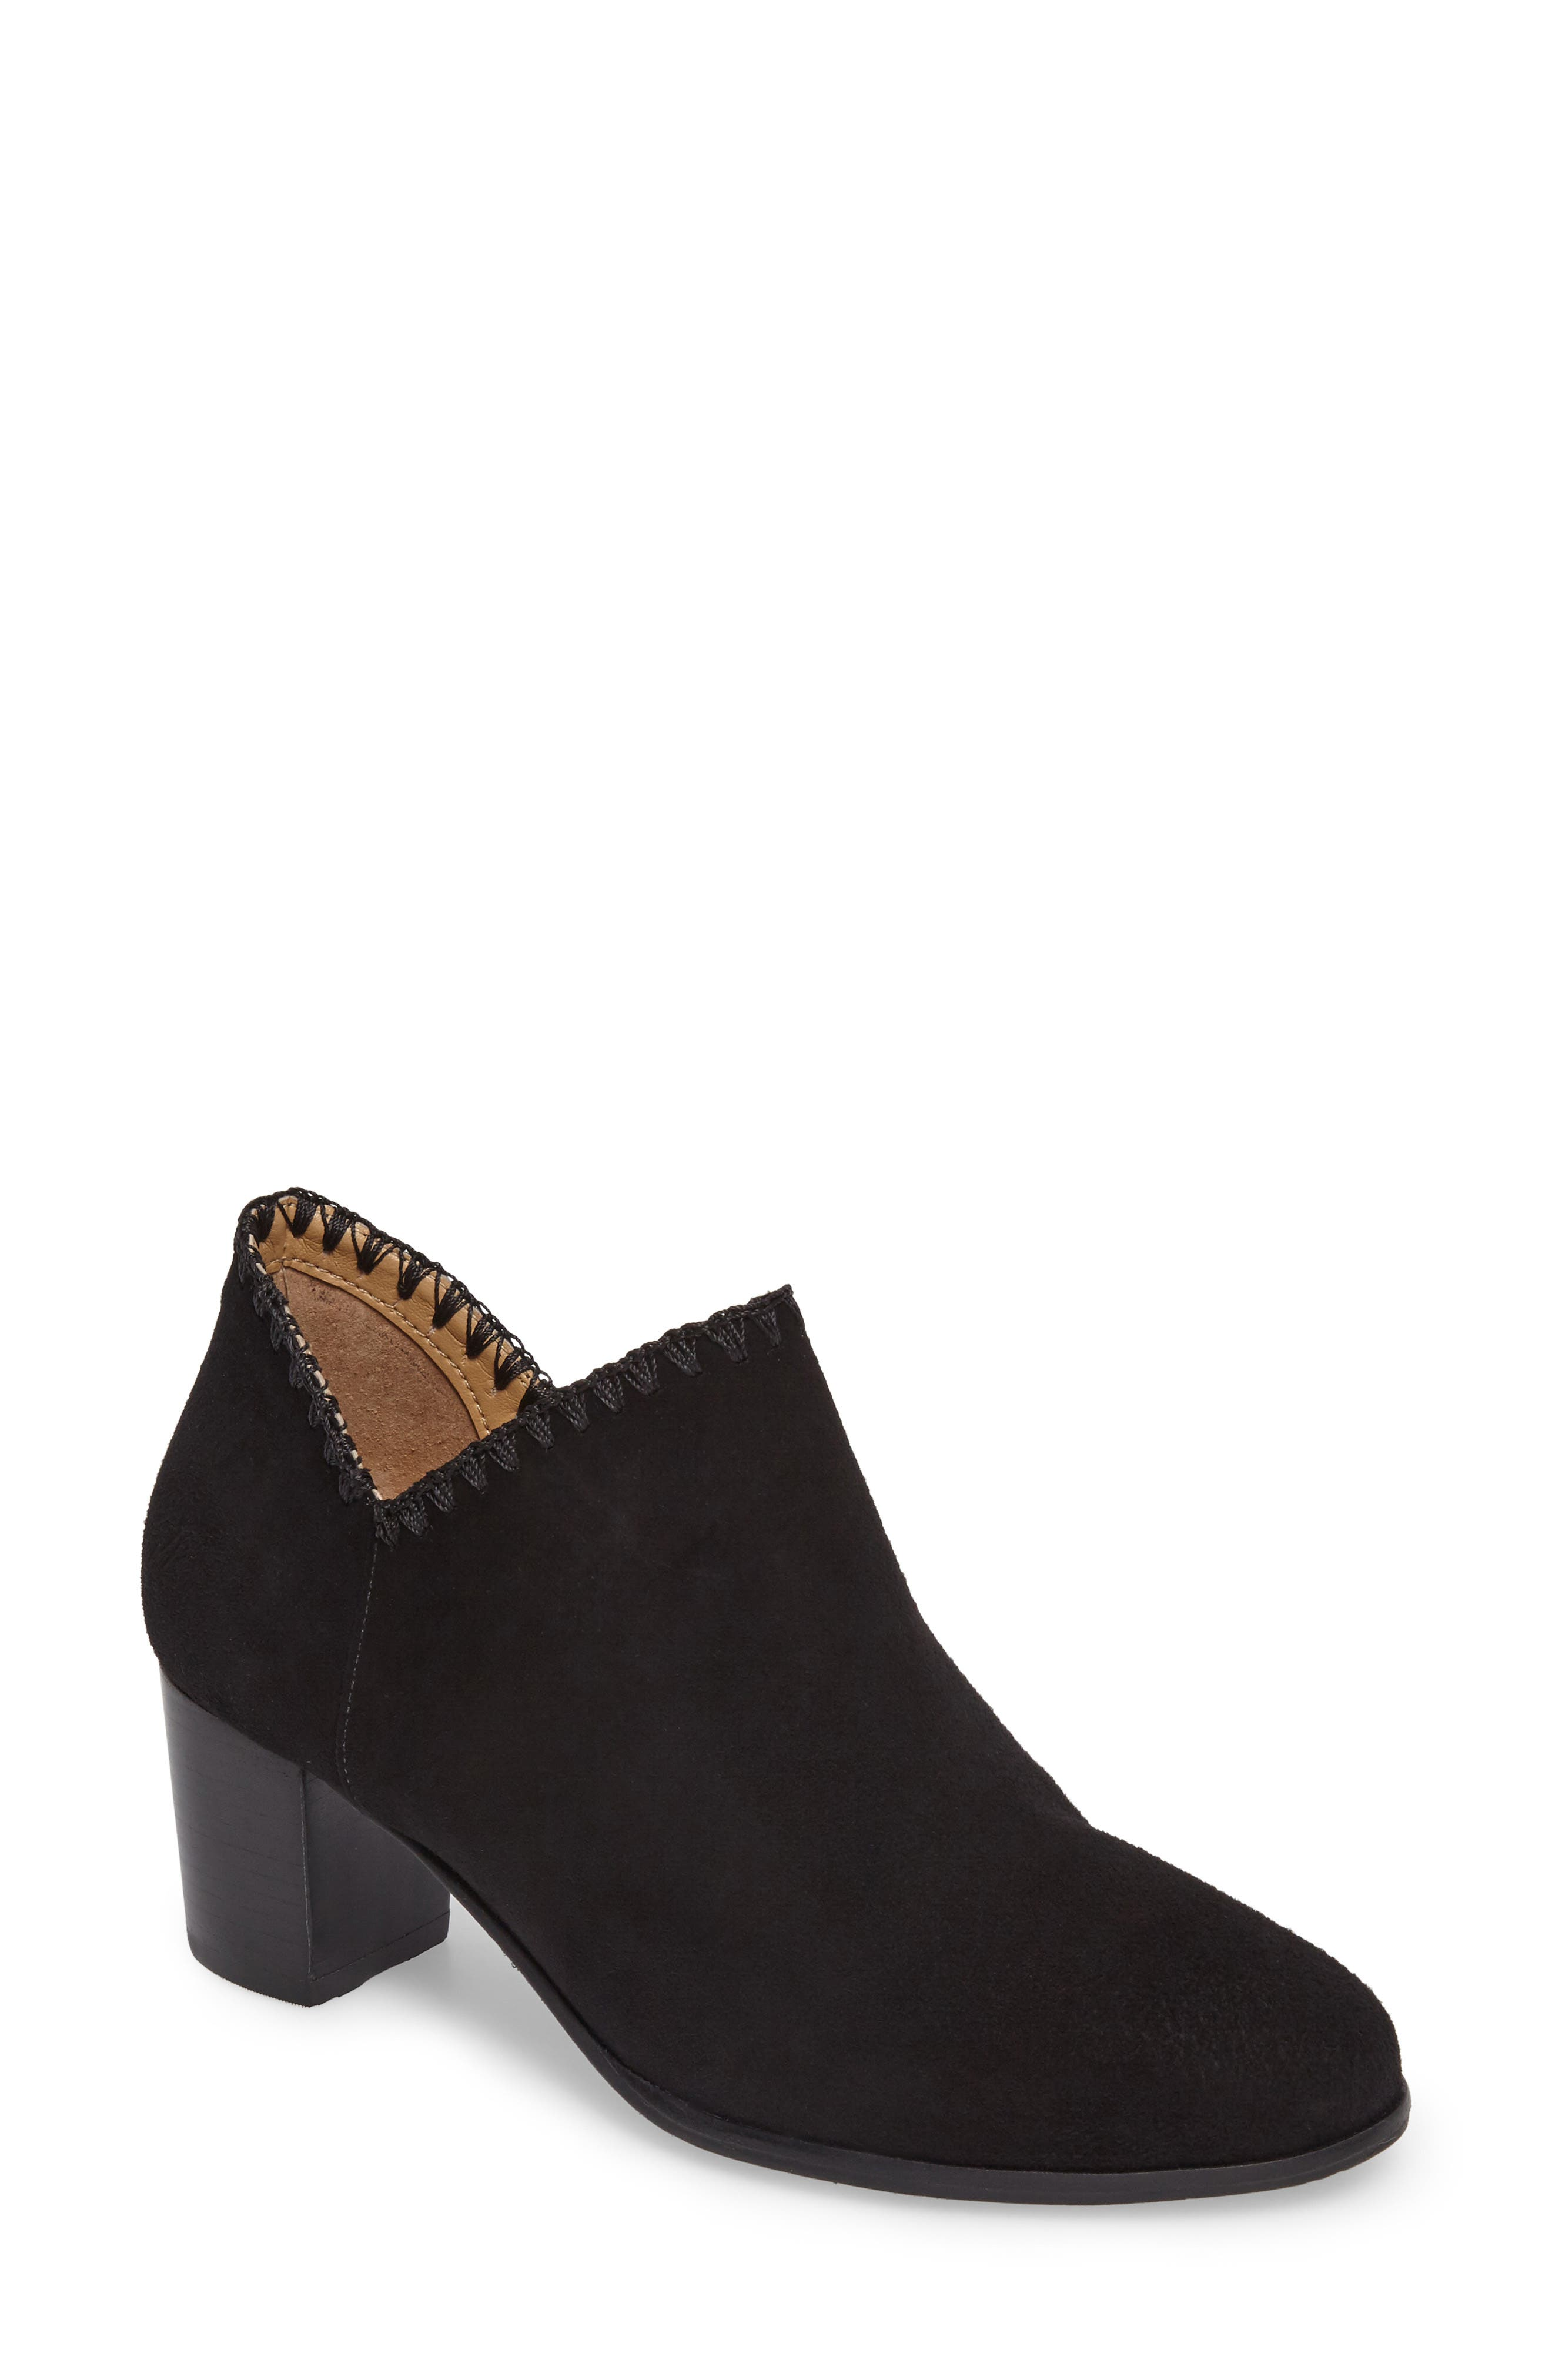 Alternate Image 1 Selected - Jack Rogers Marlow Bootie (Women)